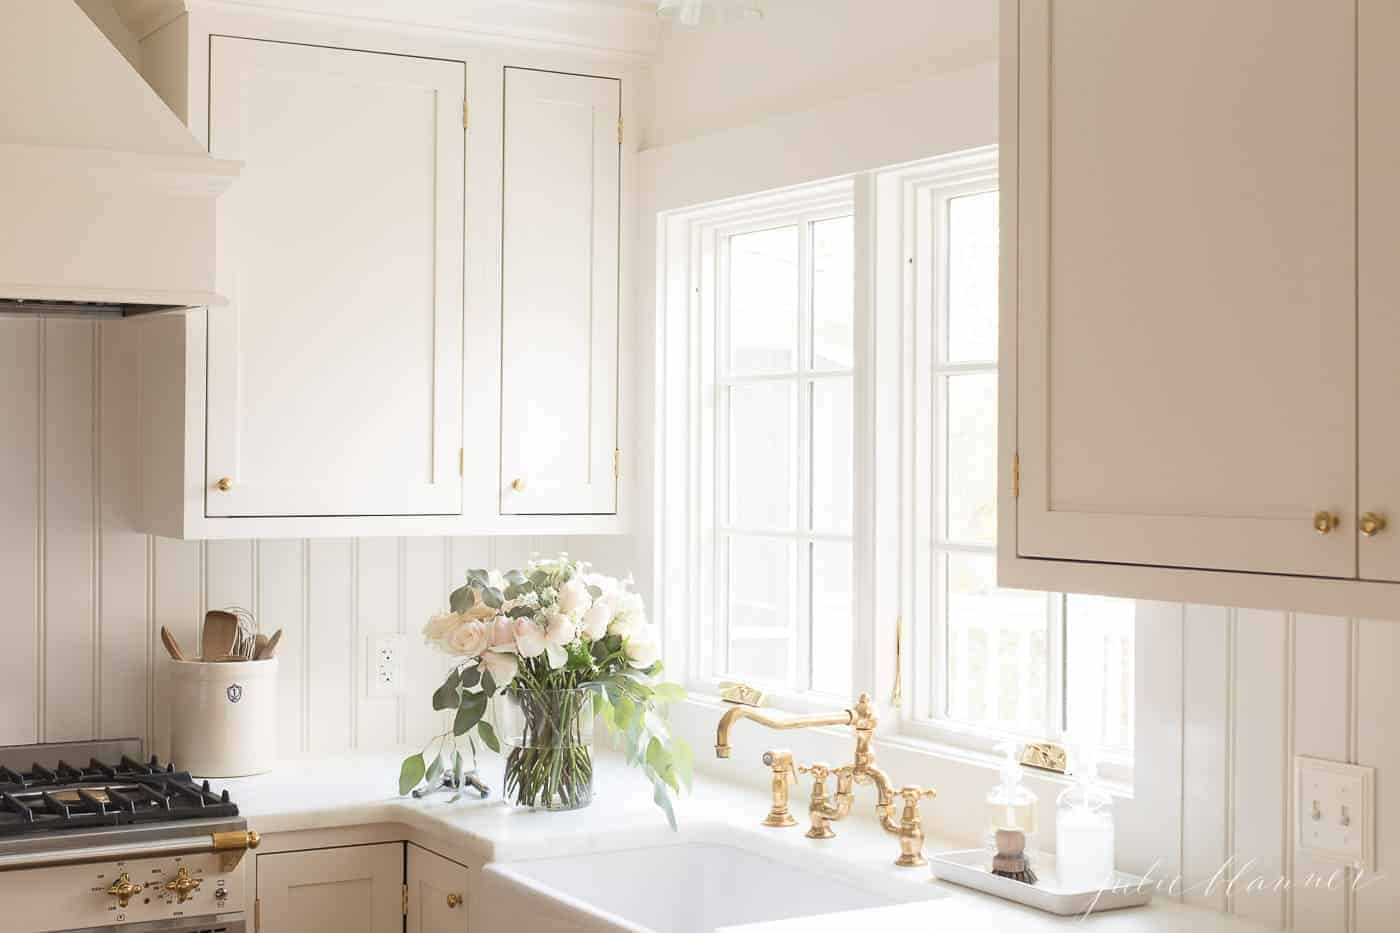 A white kitchen with a farmhouse sink, brass kitchen faucet and a vase of flowers to the side.